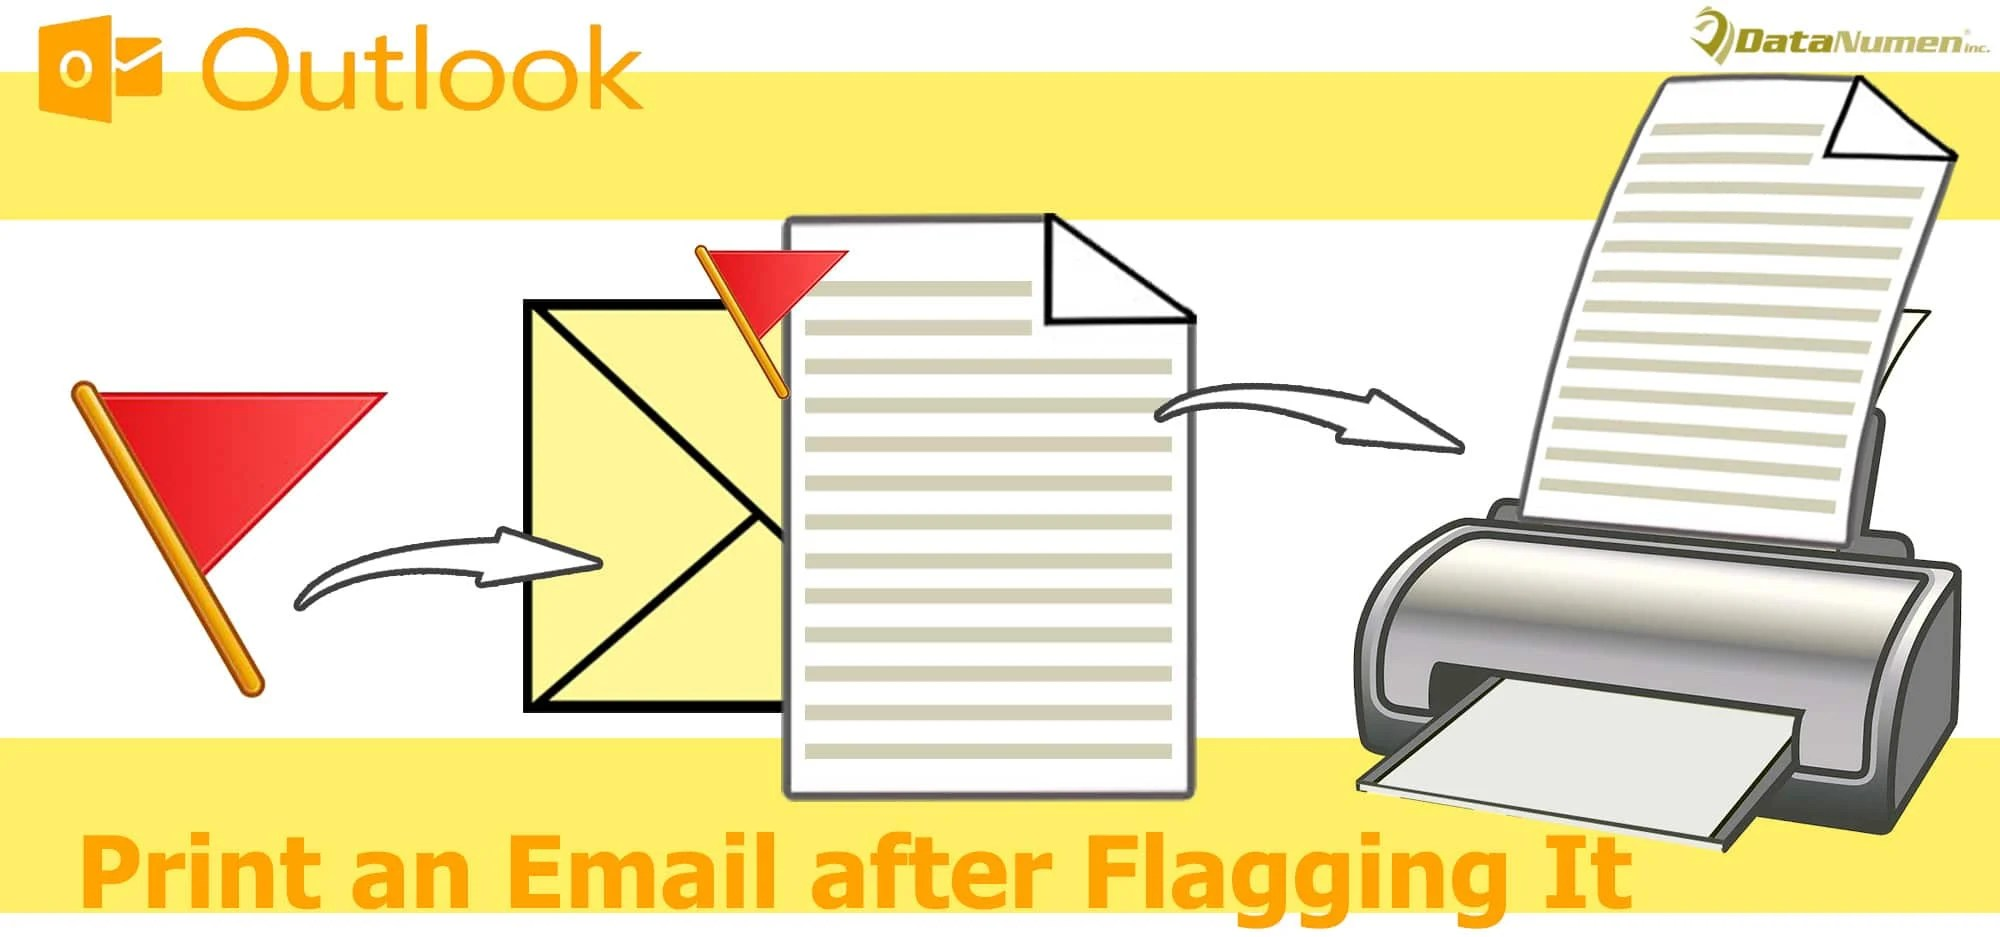 Auto Print an Email after Flagging It in Your Outlook